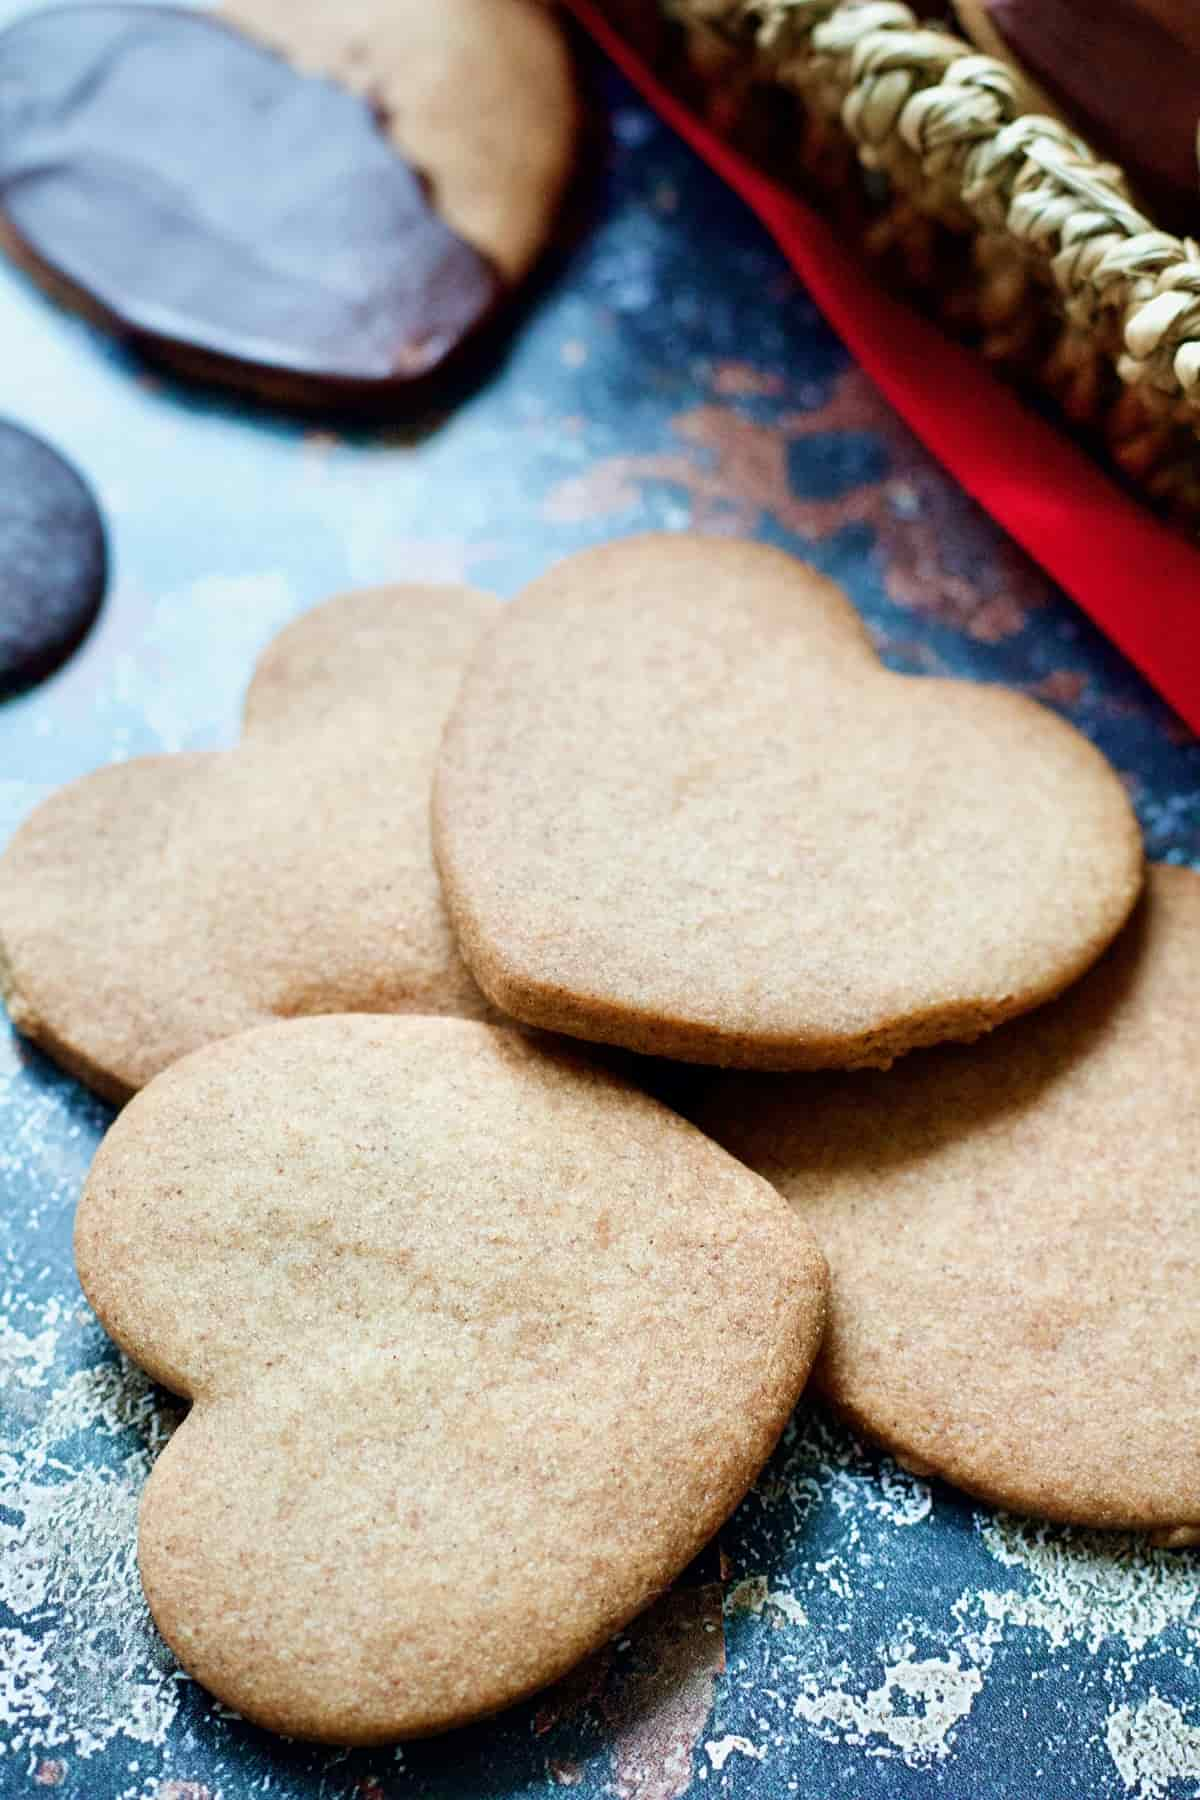 Hear shaped cinnamon cookies piled up (close up).